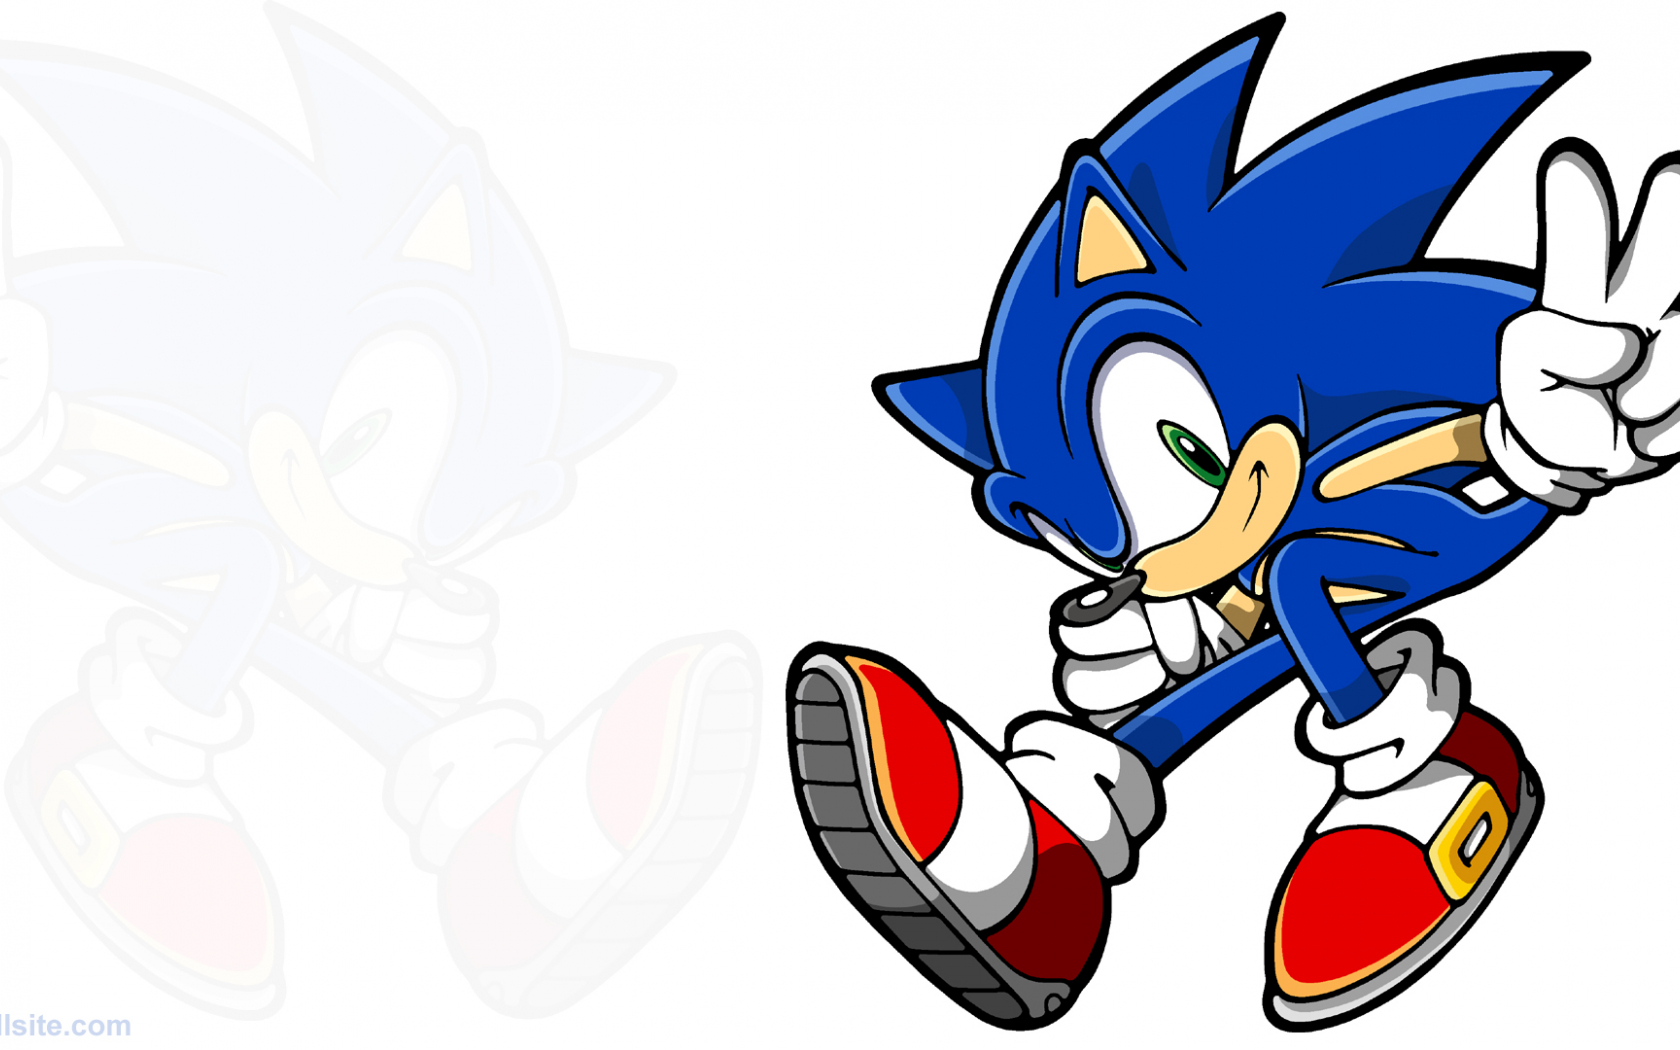 Free Download Sonic The Hedgehog Png Wallpaper 271550 1920x1080 For Your Desktop Mobile Tablet Explore 45 Sonic Colors Wallpapers Hd Sonic The Hedgehog Wallpaper Sonic The Hedgehog Hd Wallpaper